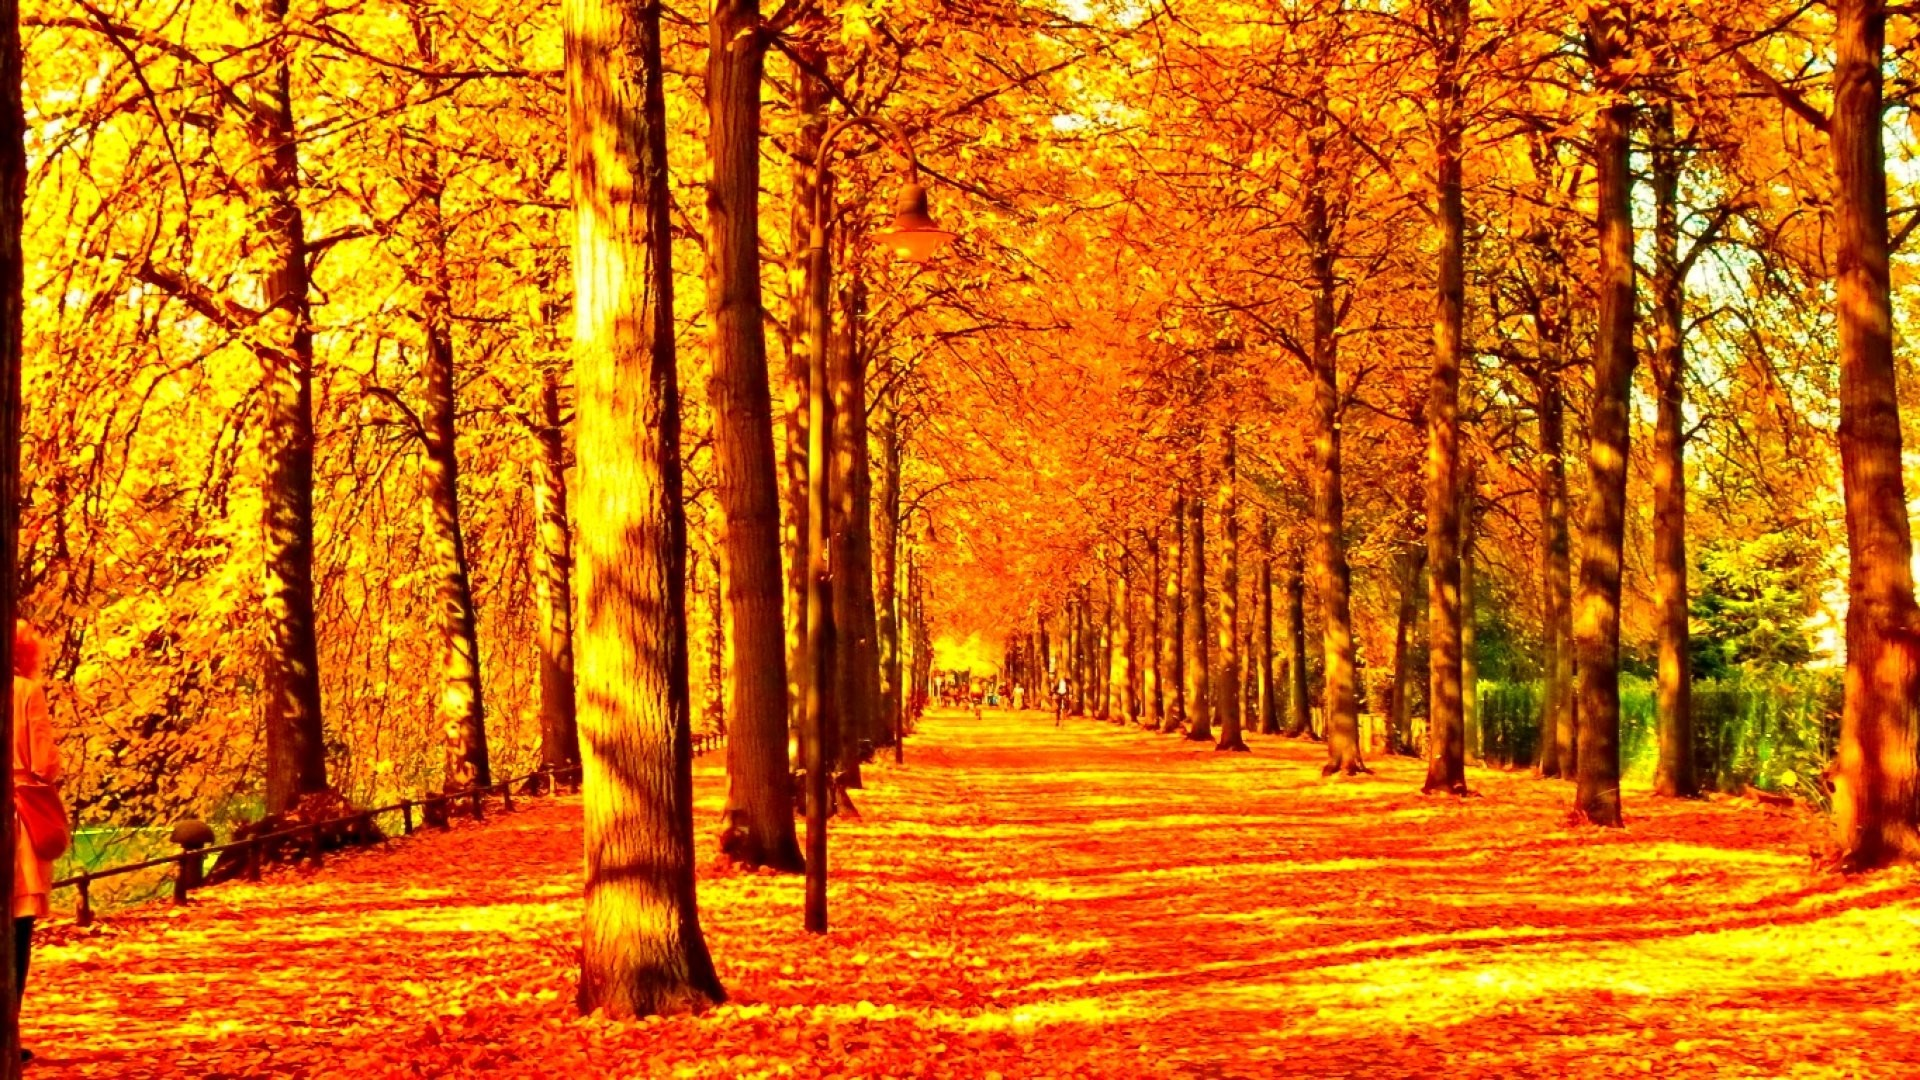 Wallpaper of Fall Season (56+ images)